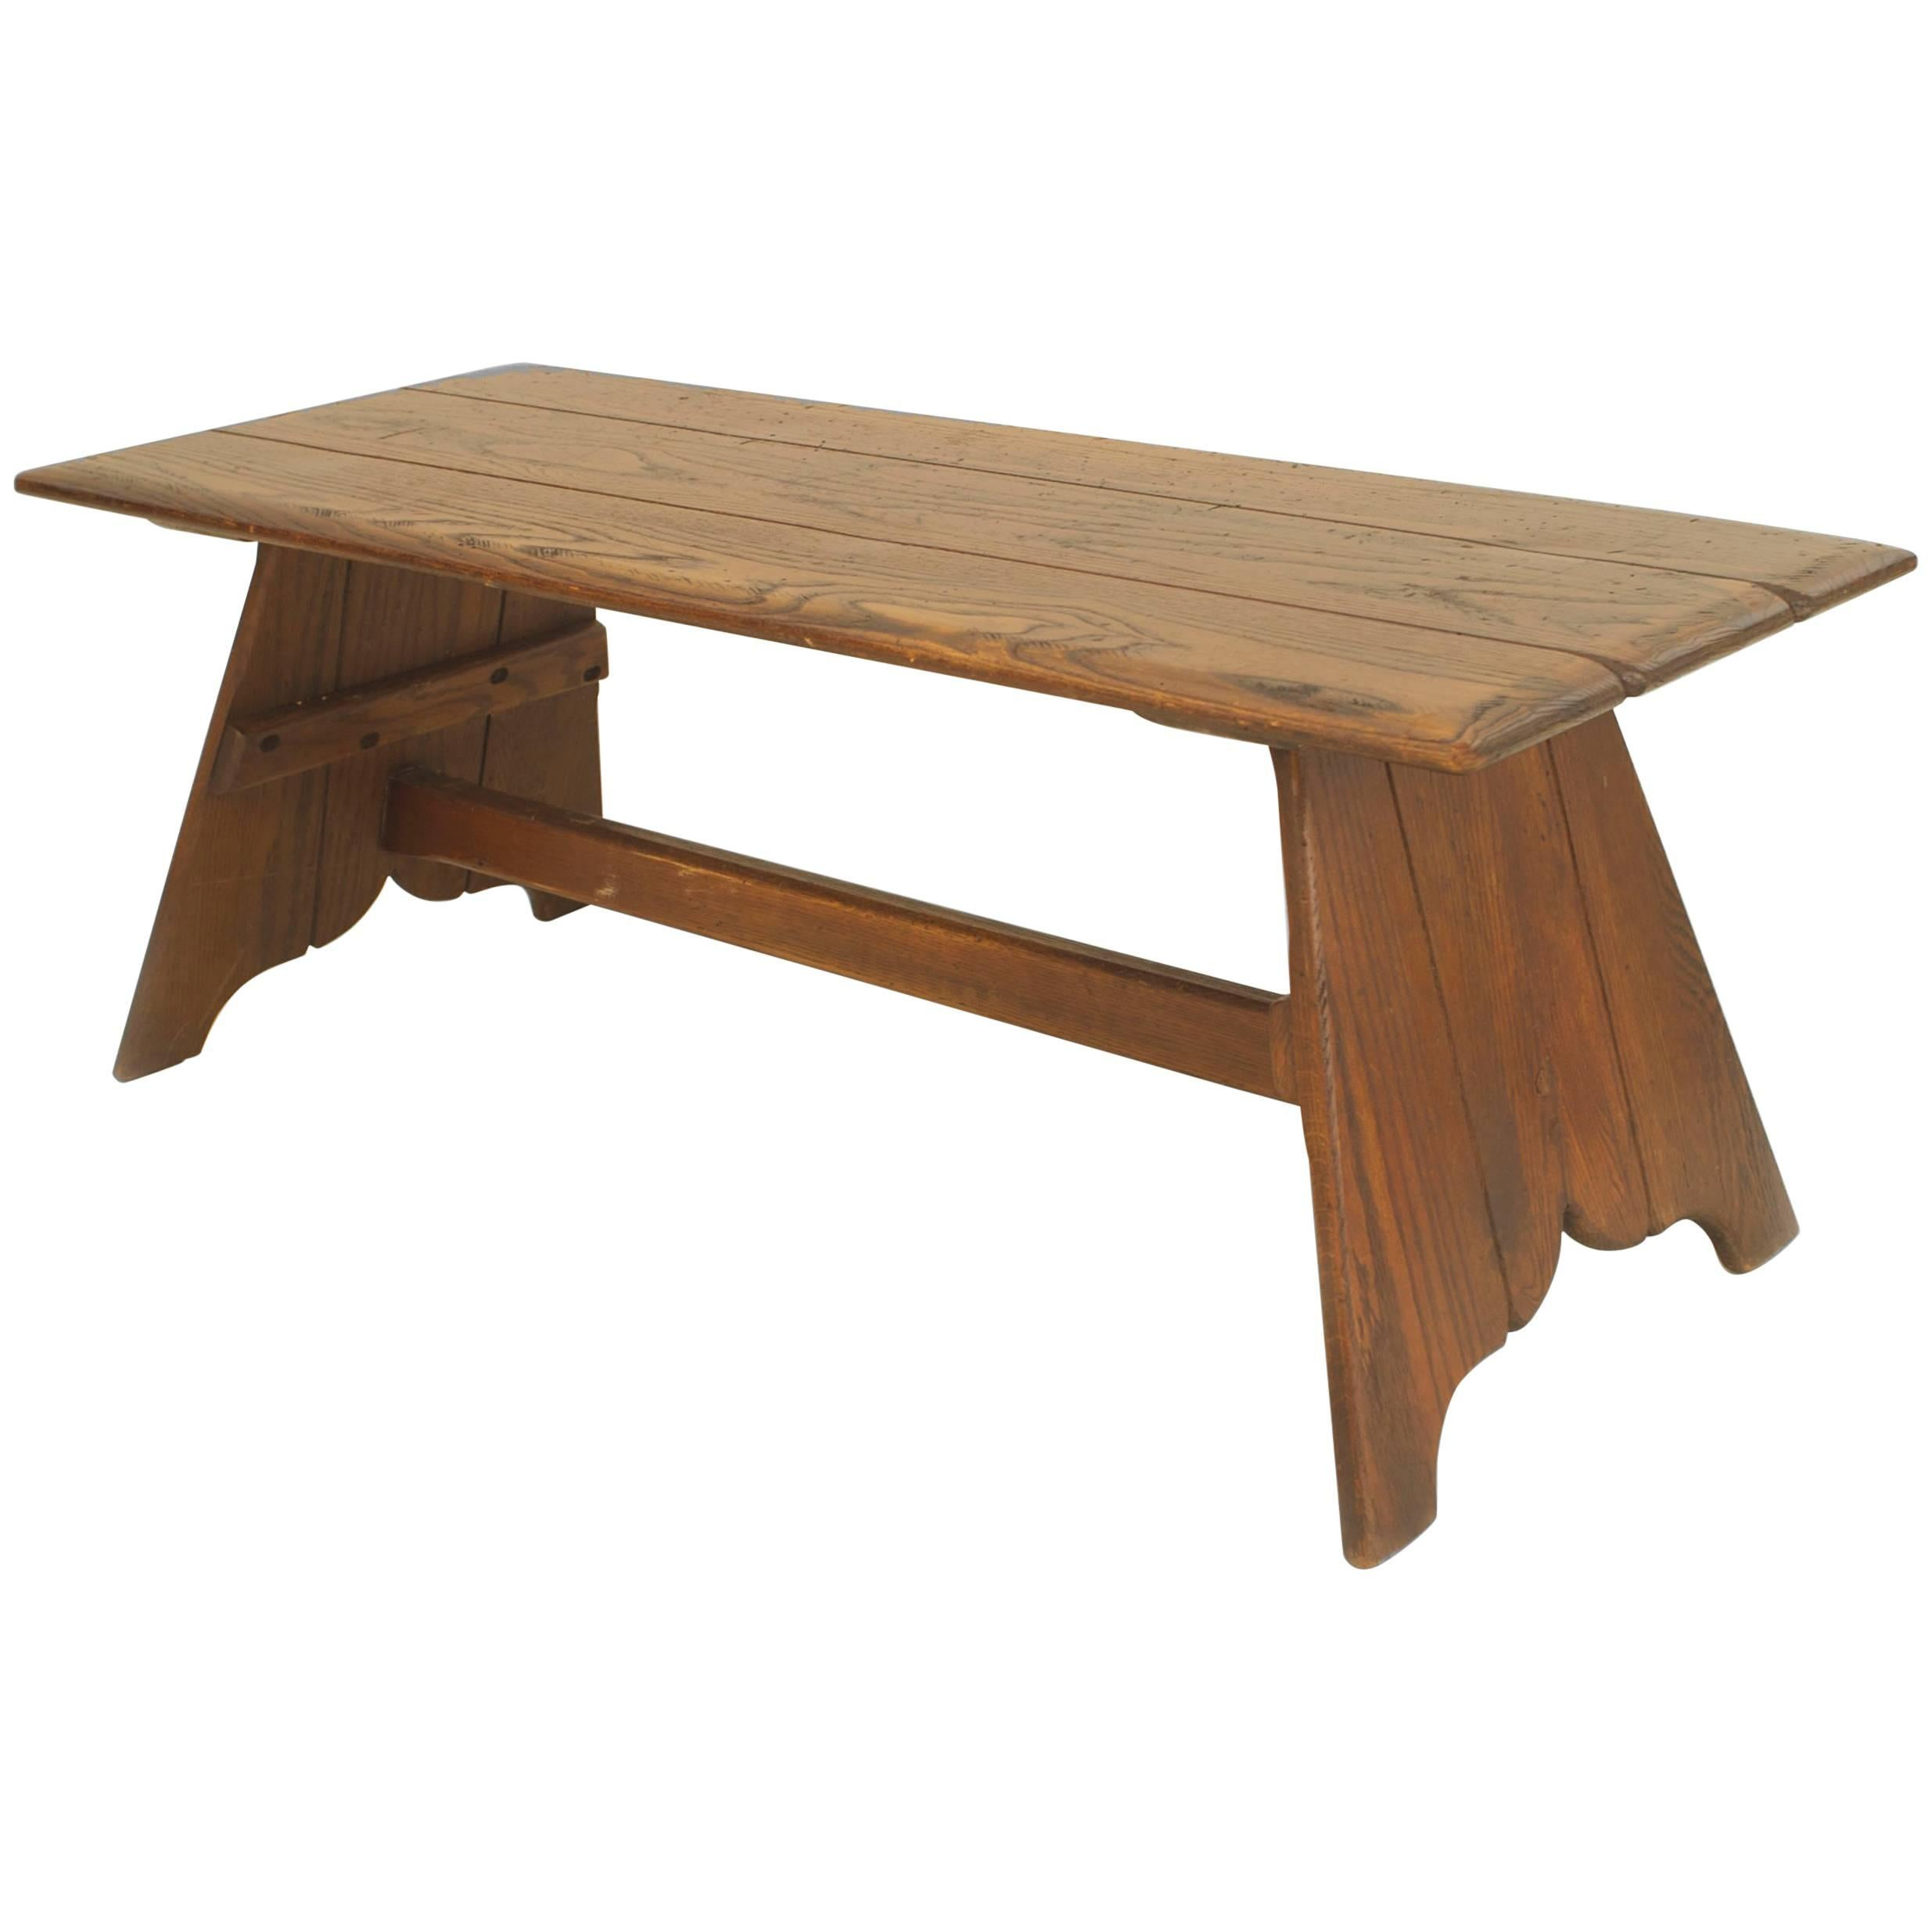 American Rustic Old Hickory Mission Style Coffee Table For Sale